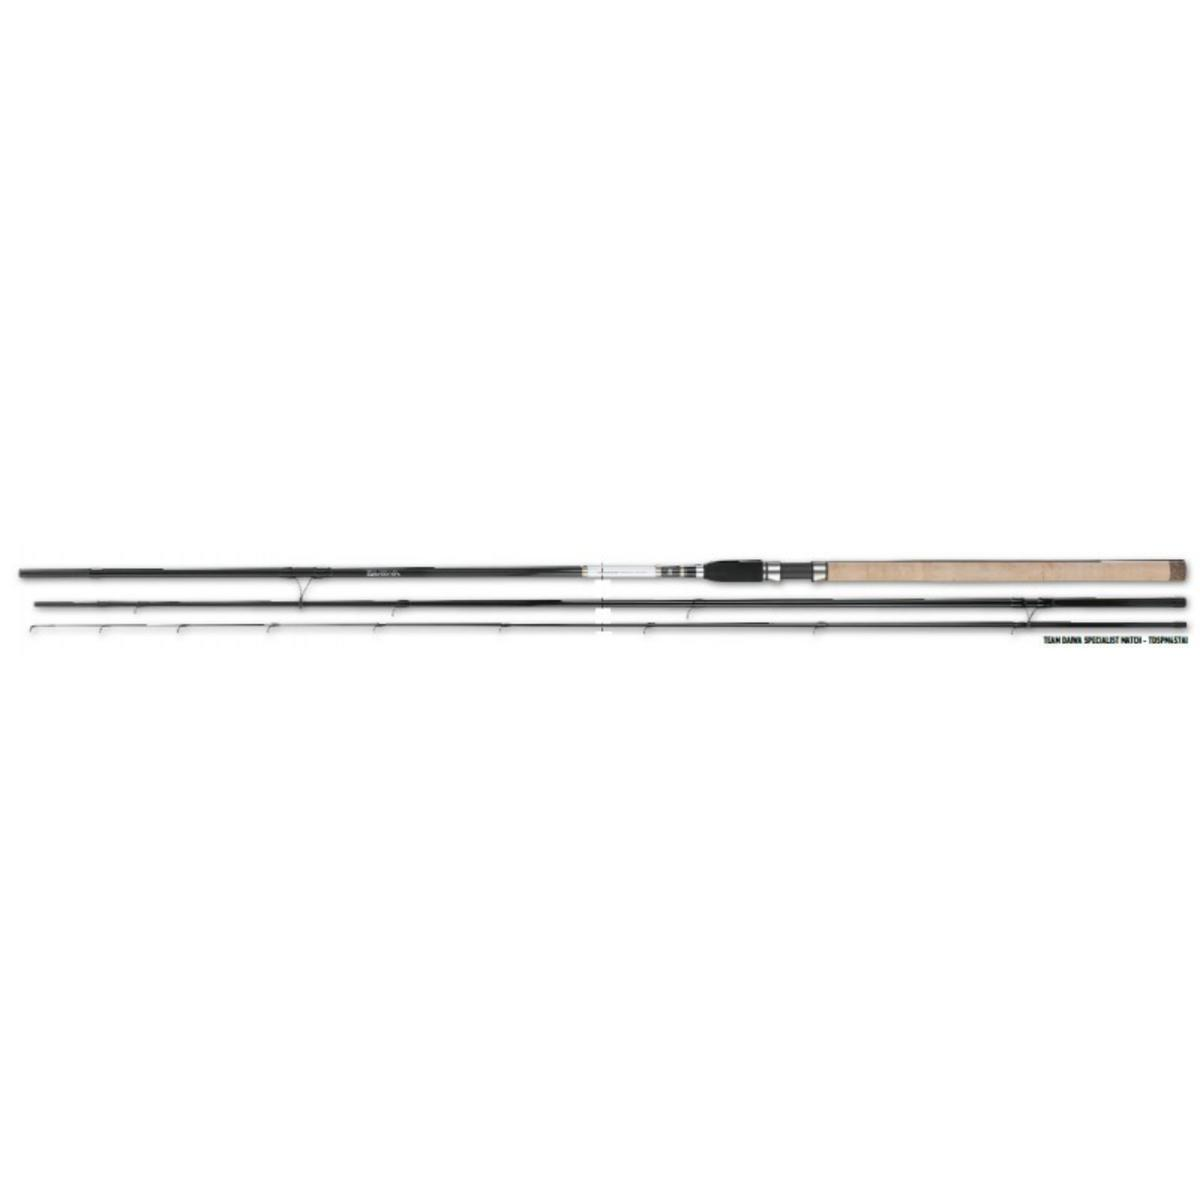 EX DISPLAY TEAM DAIWA SPECIALIST 15' 3 SECTION MATCH ROD TDSPM153-B1